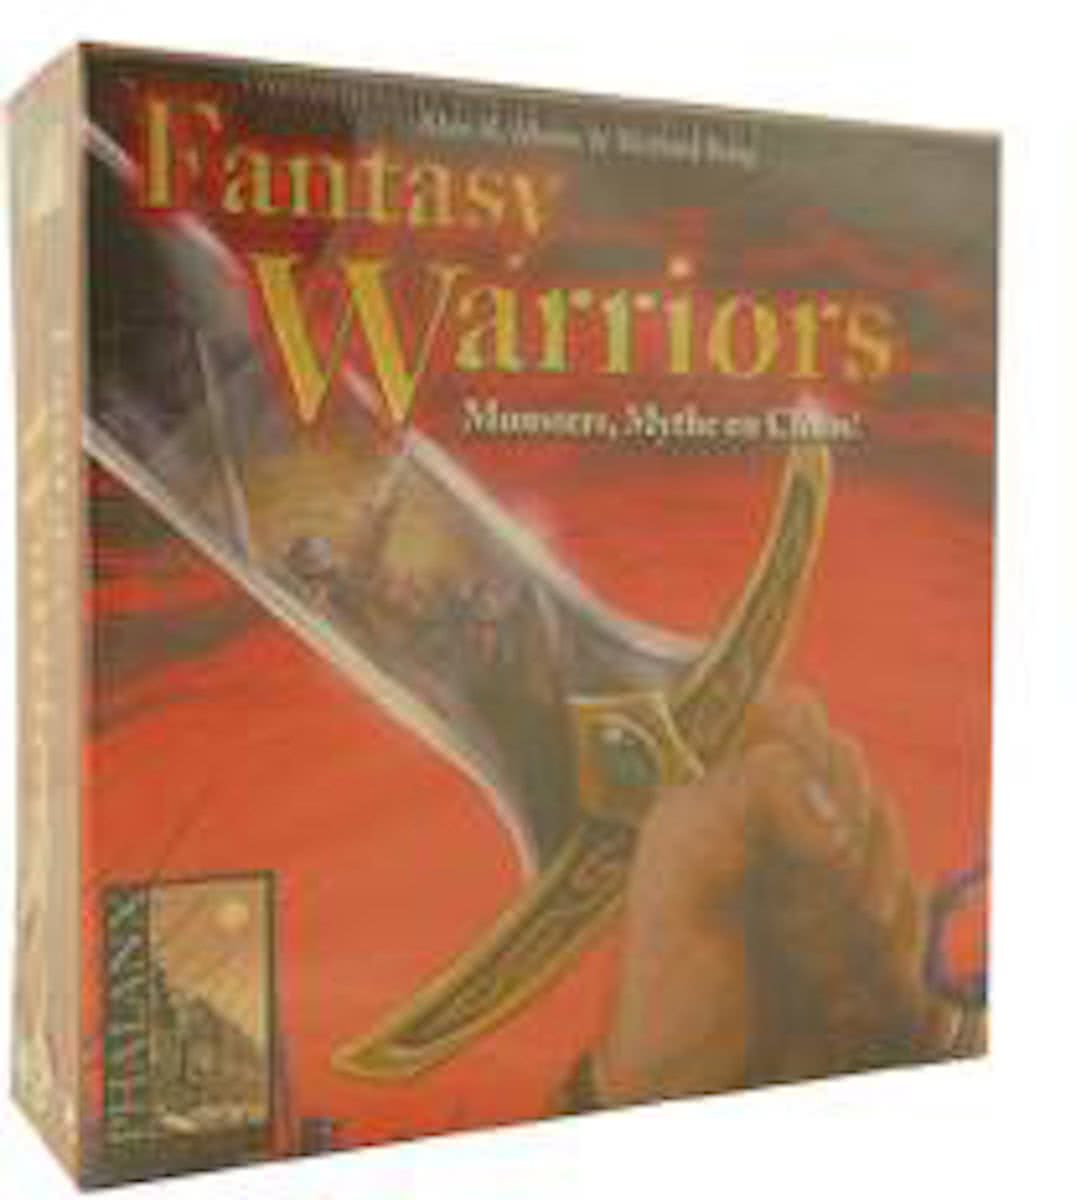 Fantasy Warriors - Gezelschapsspel